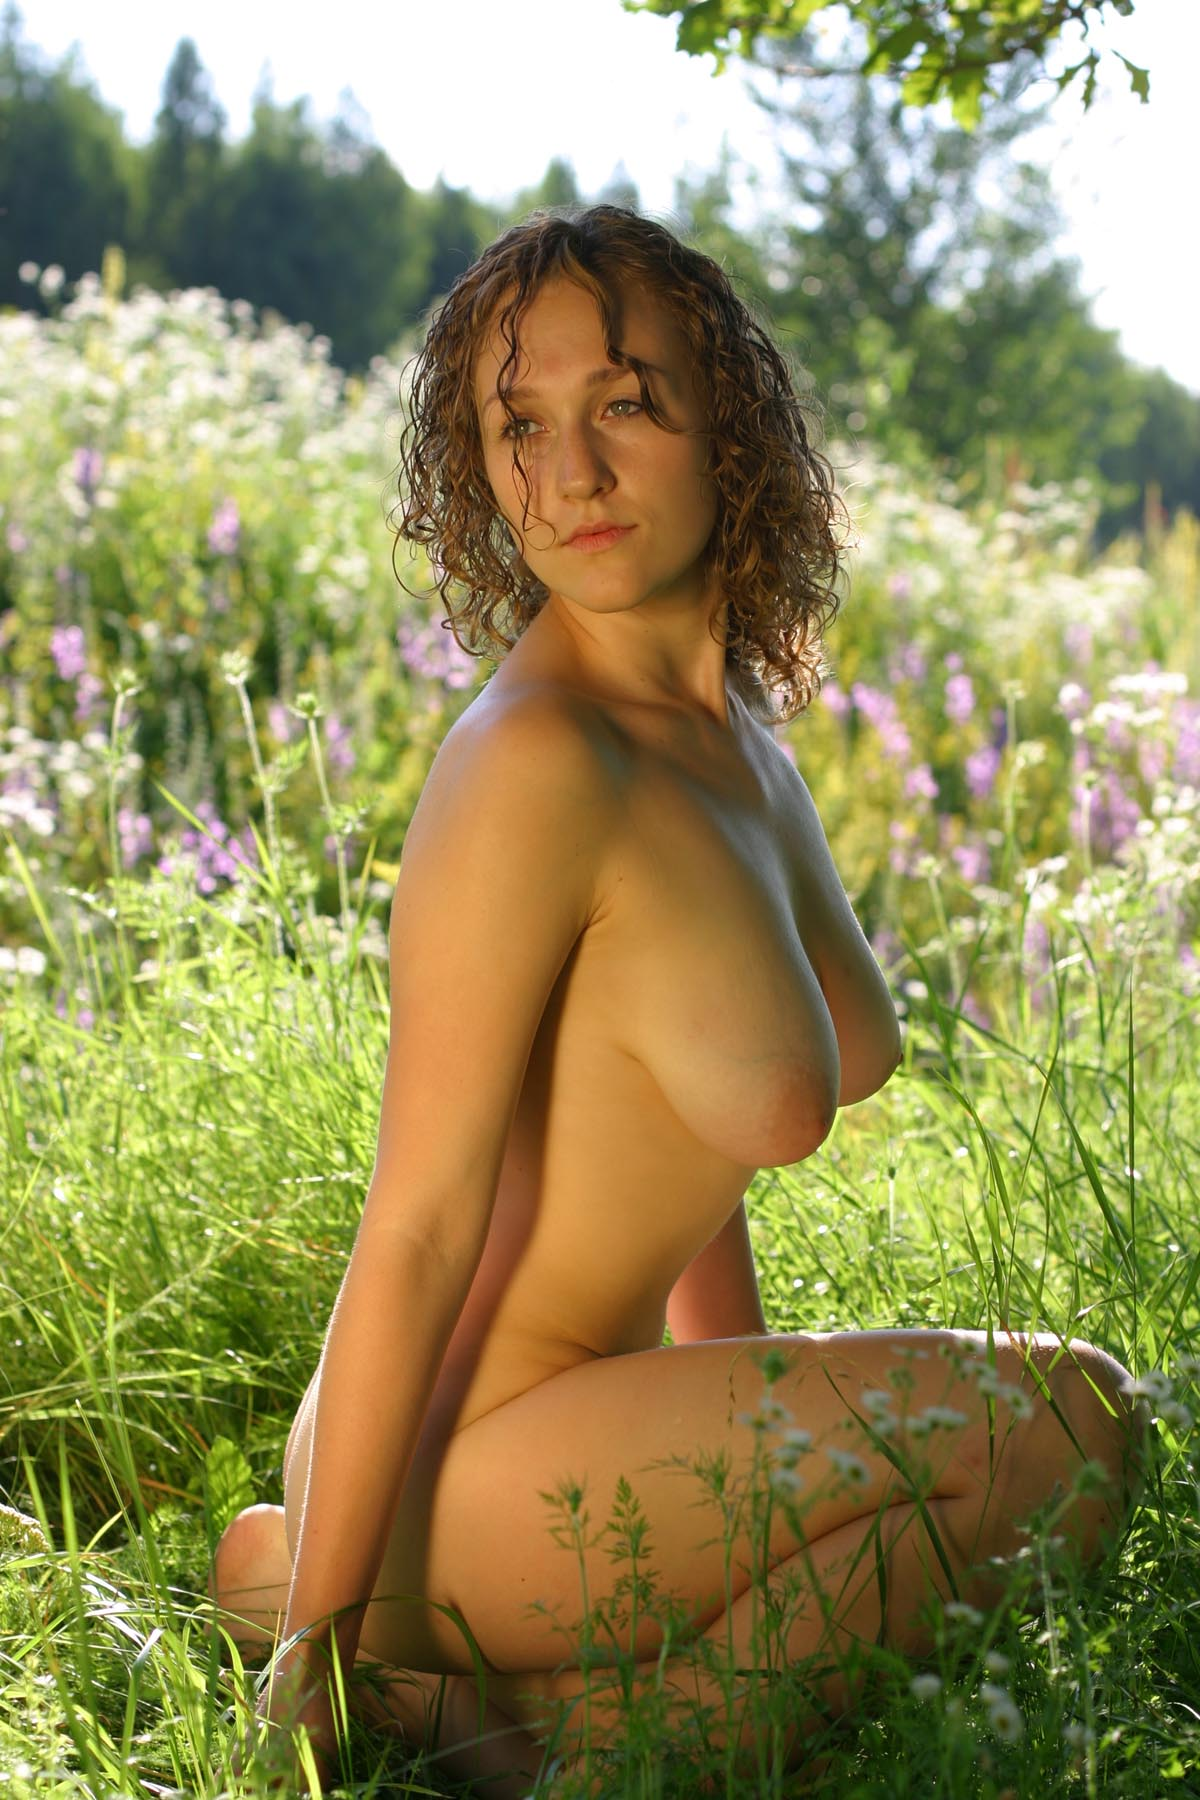 Curly russian girl posing naked outdoors | Russian Sexy Girls